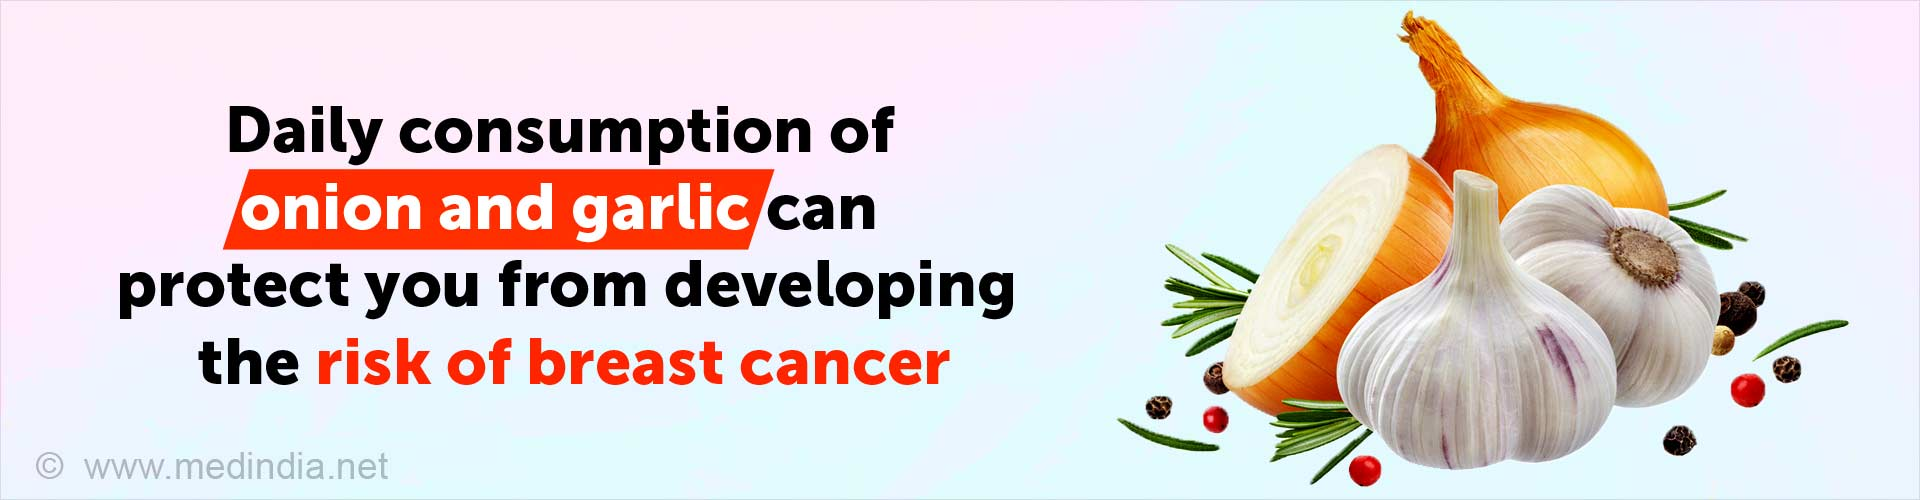 Daily consumption of onion and garlic can protect you from developing the risk of breast cancer.